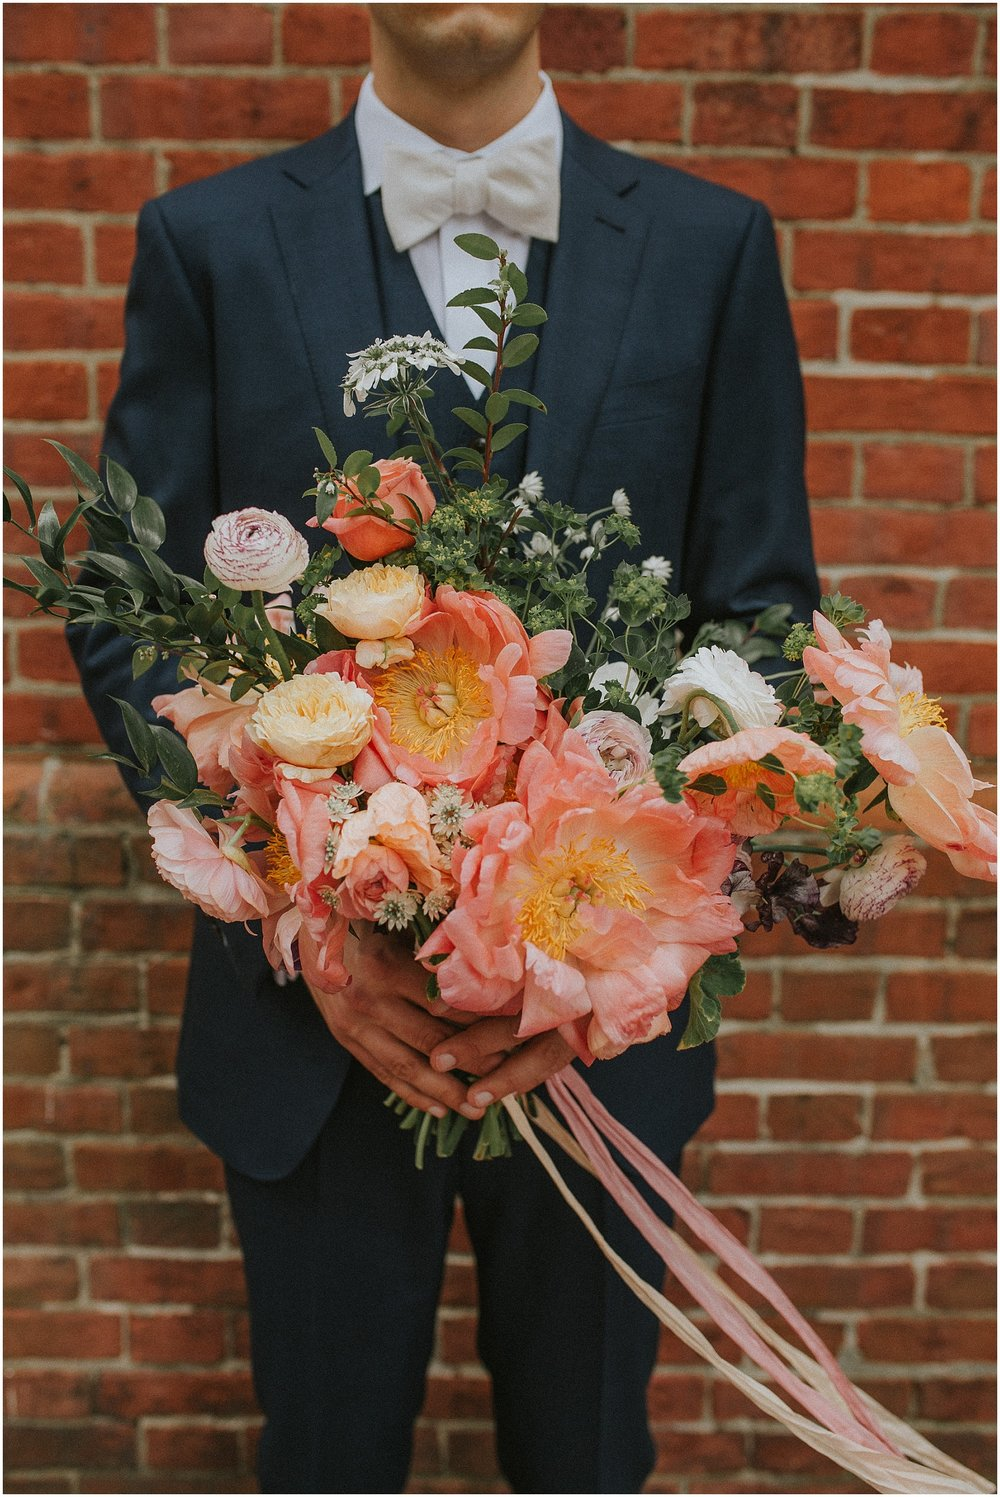 Groom and Bridal bouquet at Arch Street Meeting House in Philadelphia Pennsylvania